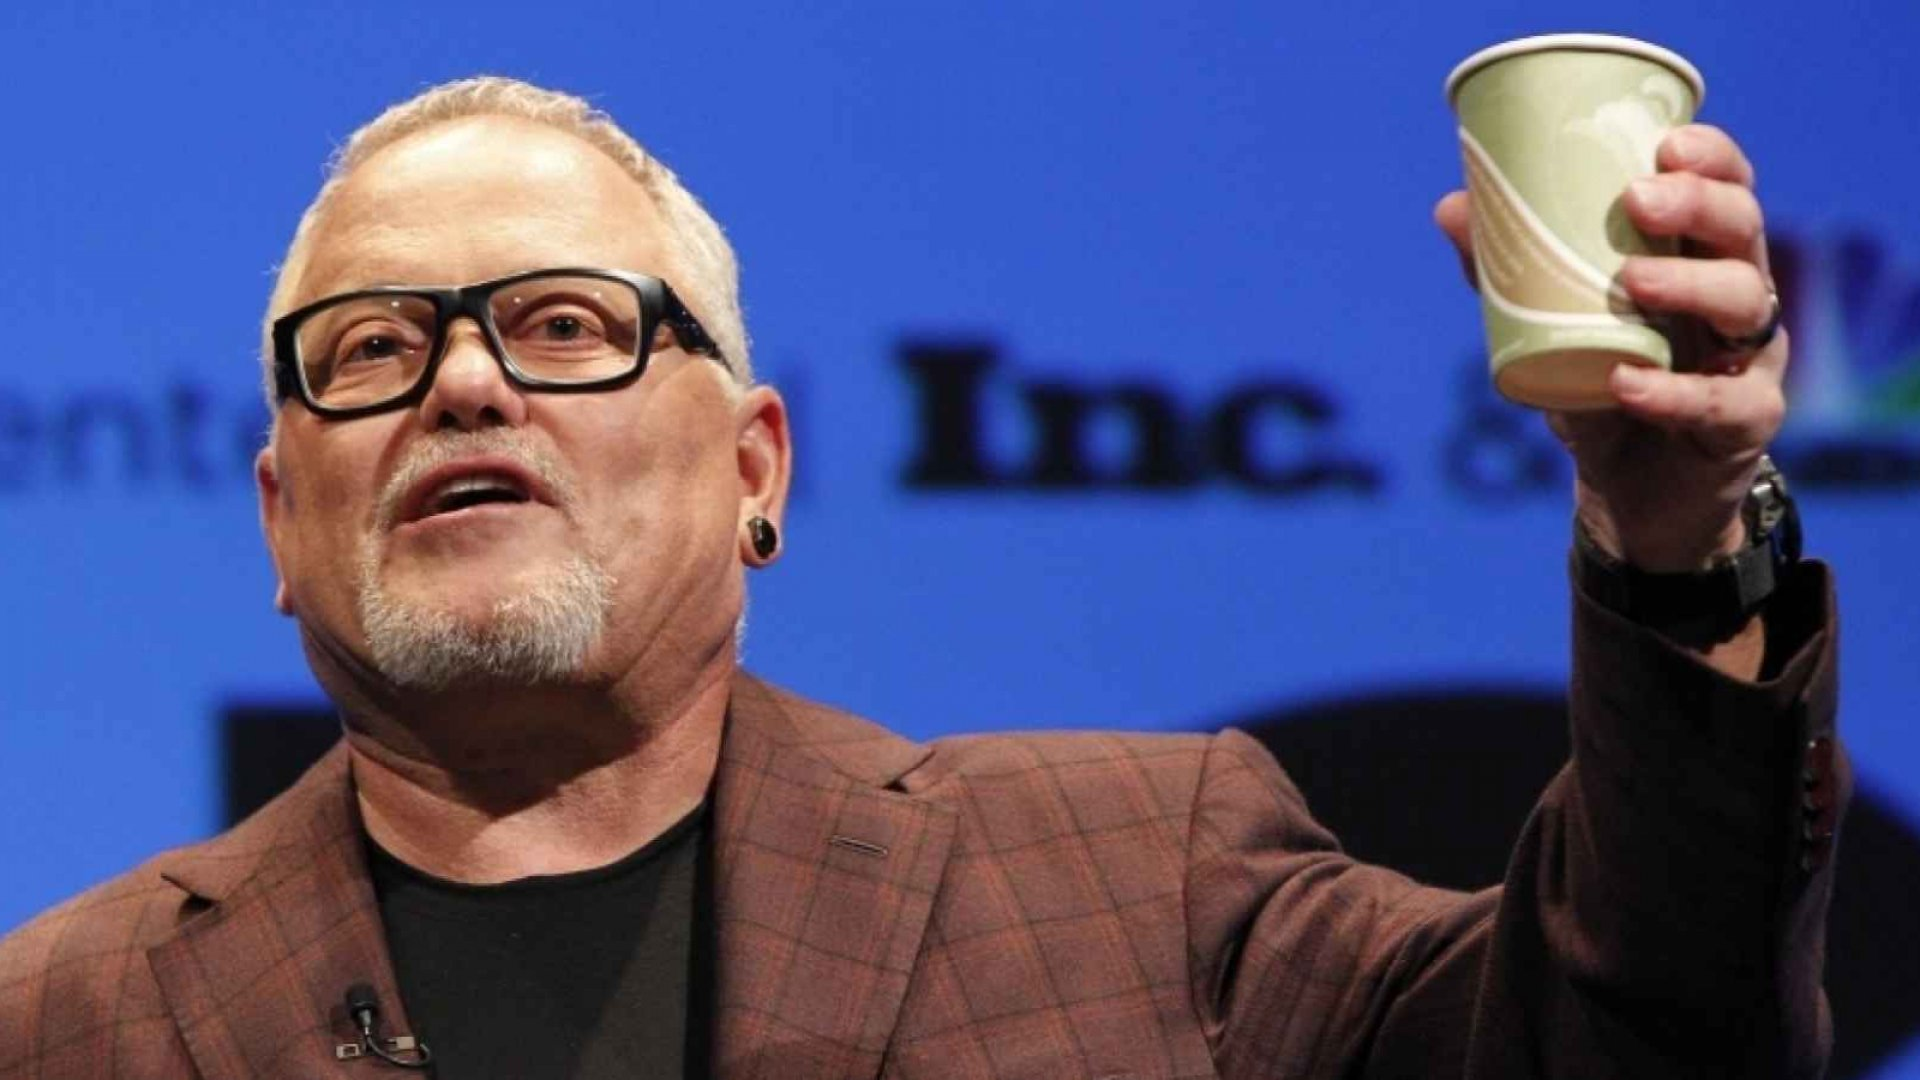 GoDaddy Founder Bob Parsons's 5 Tips for Business Success